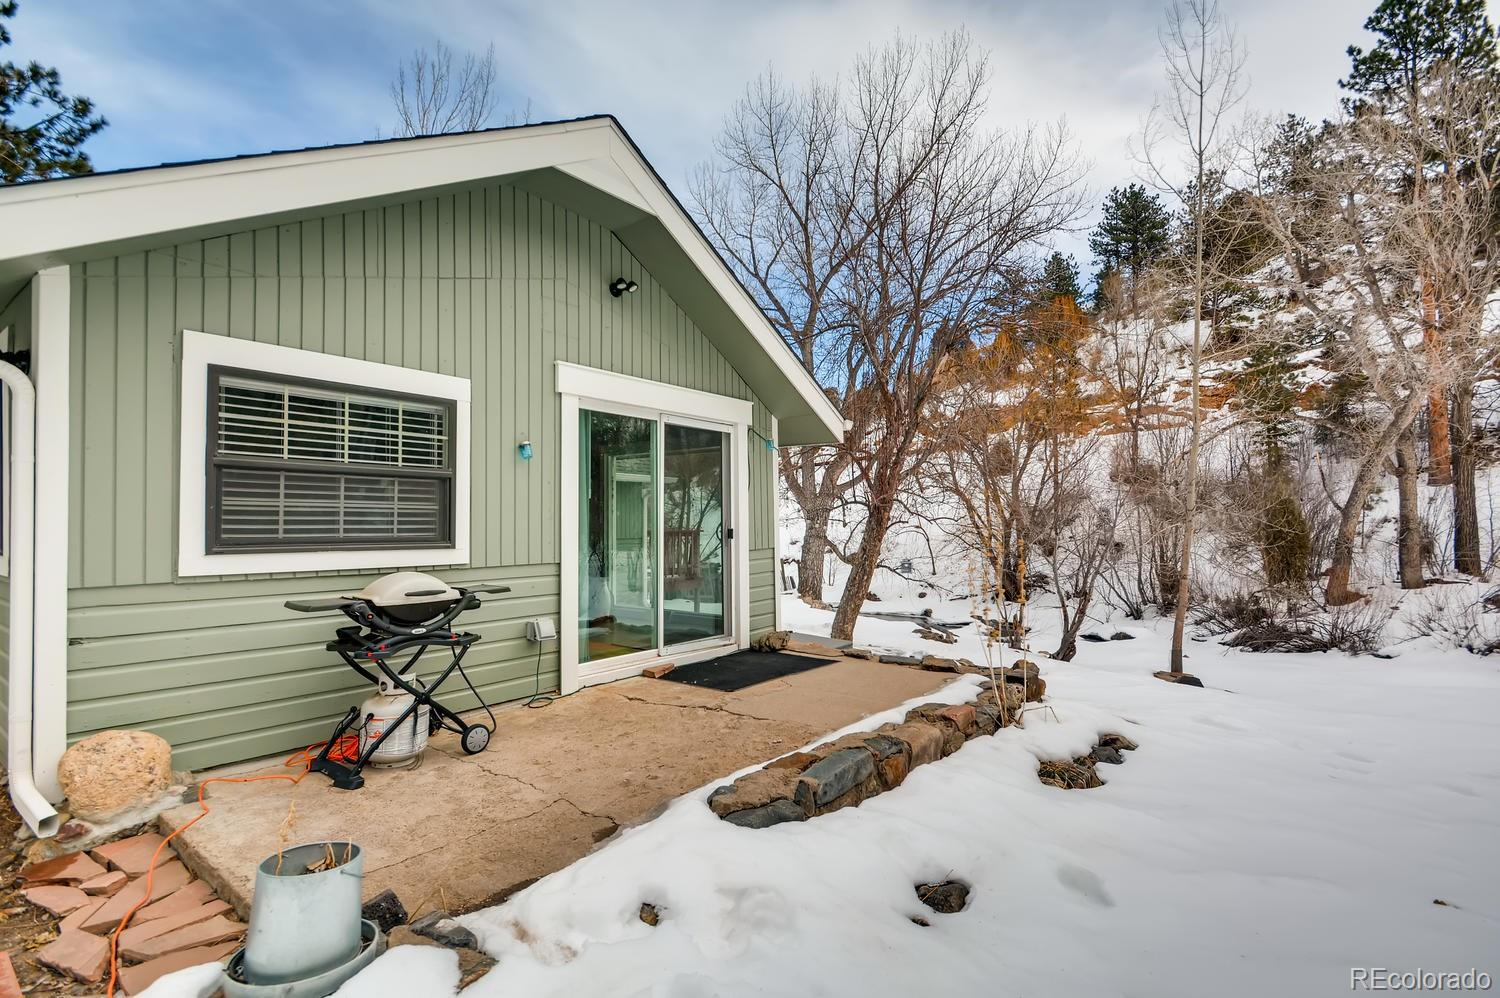 MLS# 7169147 - 20 - 22018 Miller Lane, Idledale, CO 80453